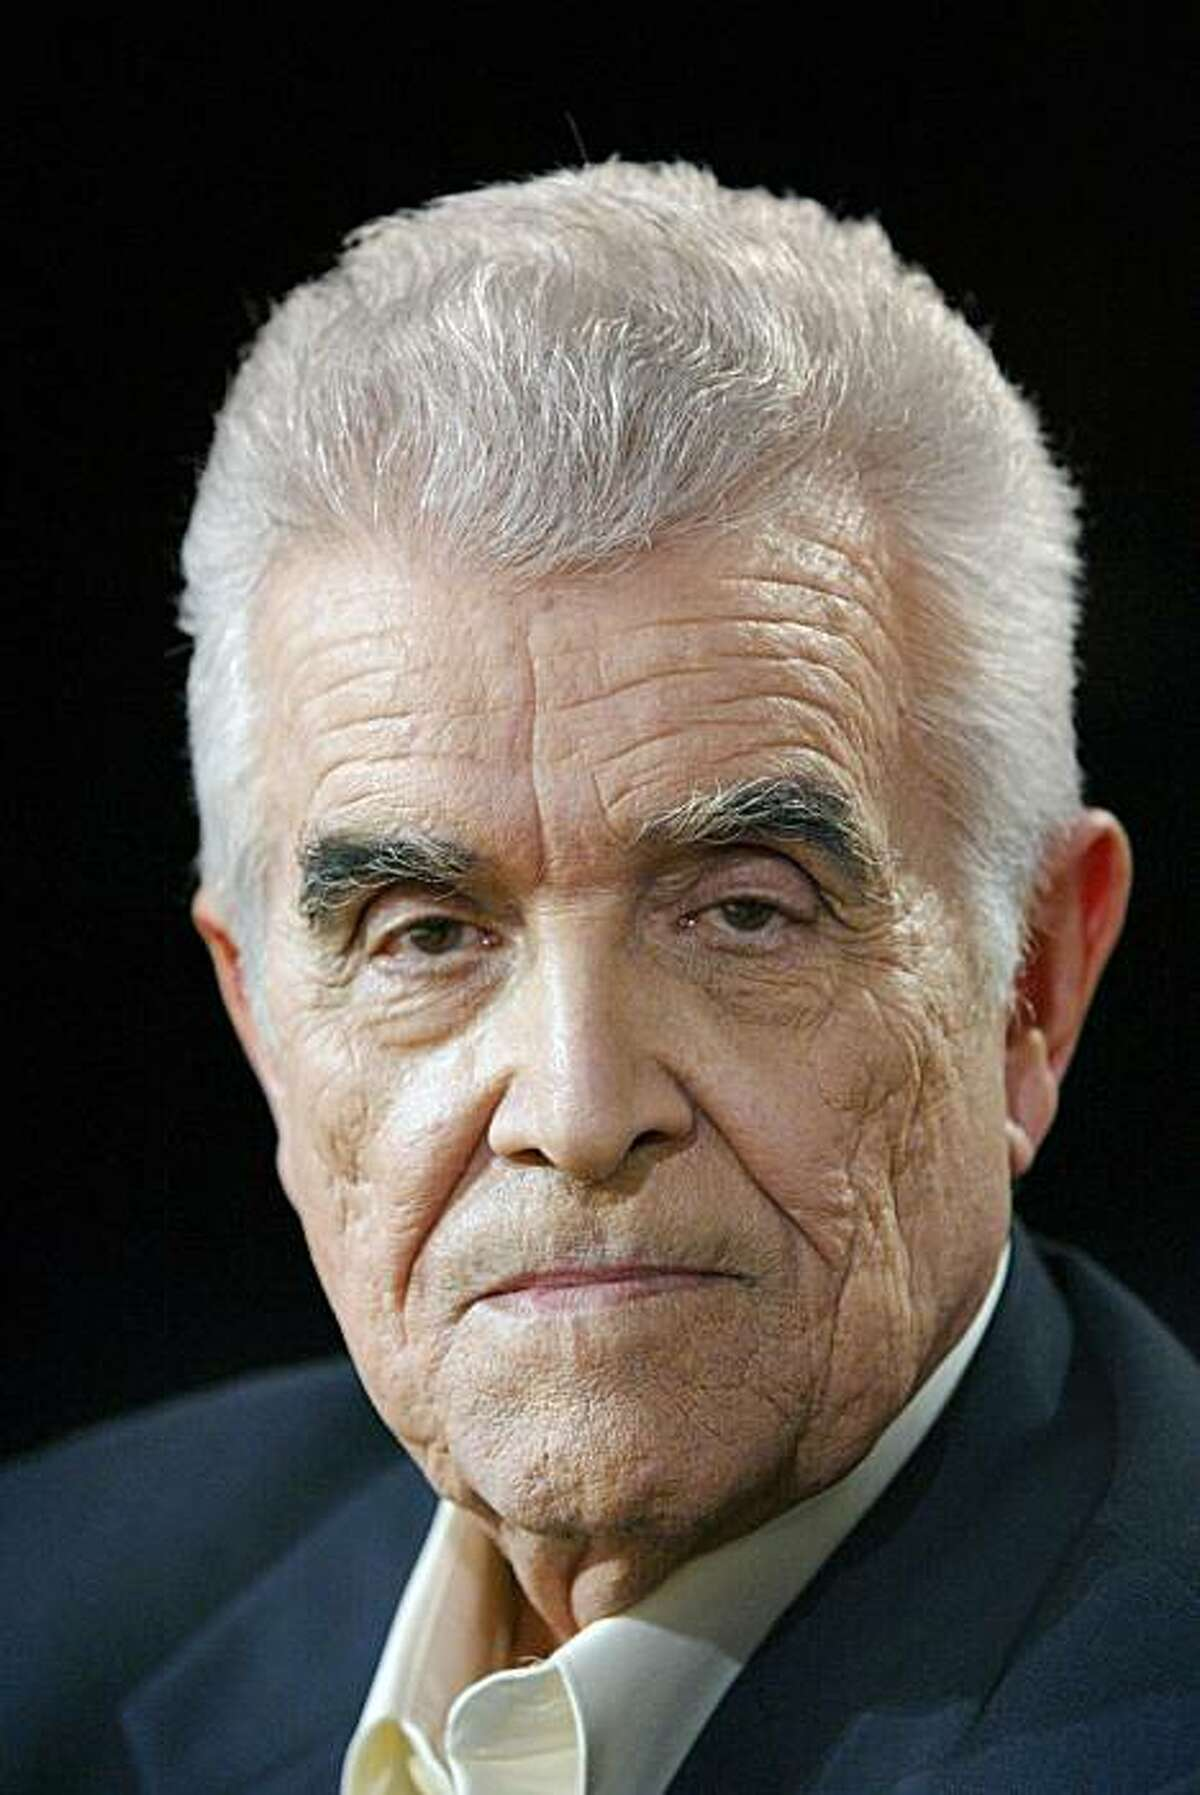 PARIS, FRANCE: (FILES) - A picture dated 29 April 2004 shows French philosopher Rene Girard, who was elected 17 March 2005 new member of the Academie francaise. AFP PHOTO FRANCOIS GUILLOT (Photo credit should read FRANCOIS GUILLOT/AFP/Getty Images) PARIS, FRANCE: (FILES) - A picture dated 29 April 2004 shows French philosopher Rene Girard, who was elected 17 March 2005 new member of the Academie francaise. AFP PHOTO FRANCOIS GUILLOT (Photo credit should read FRANCOIS GUILLOT/AFP/Getty Images)